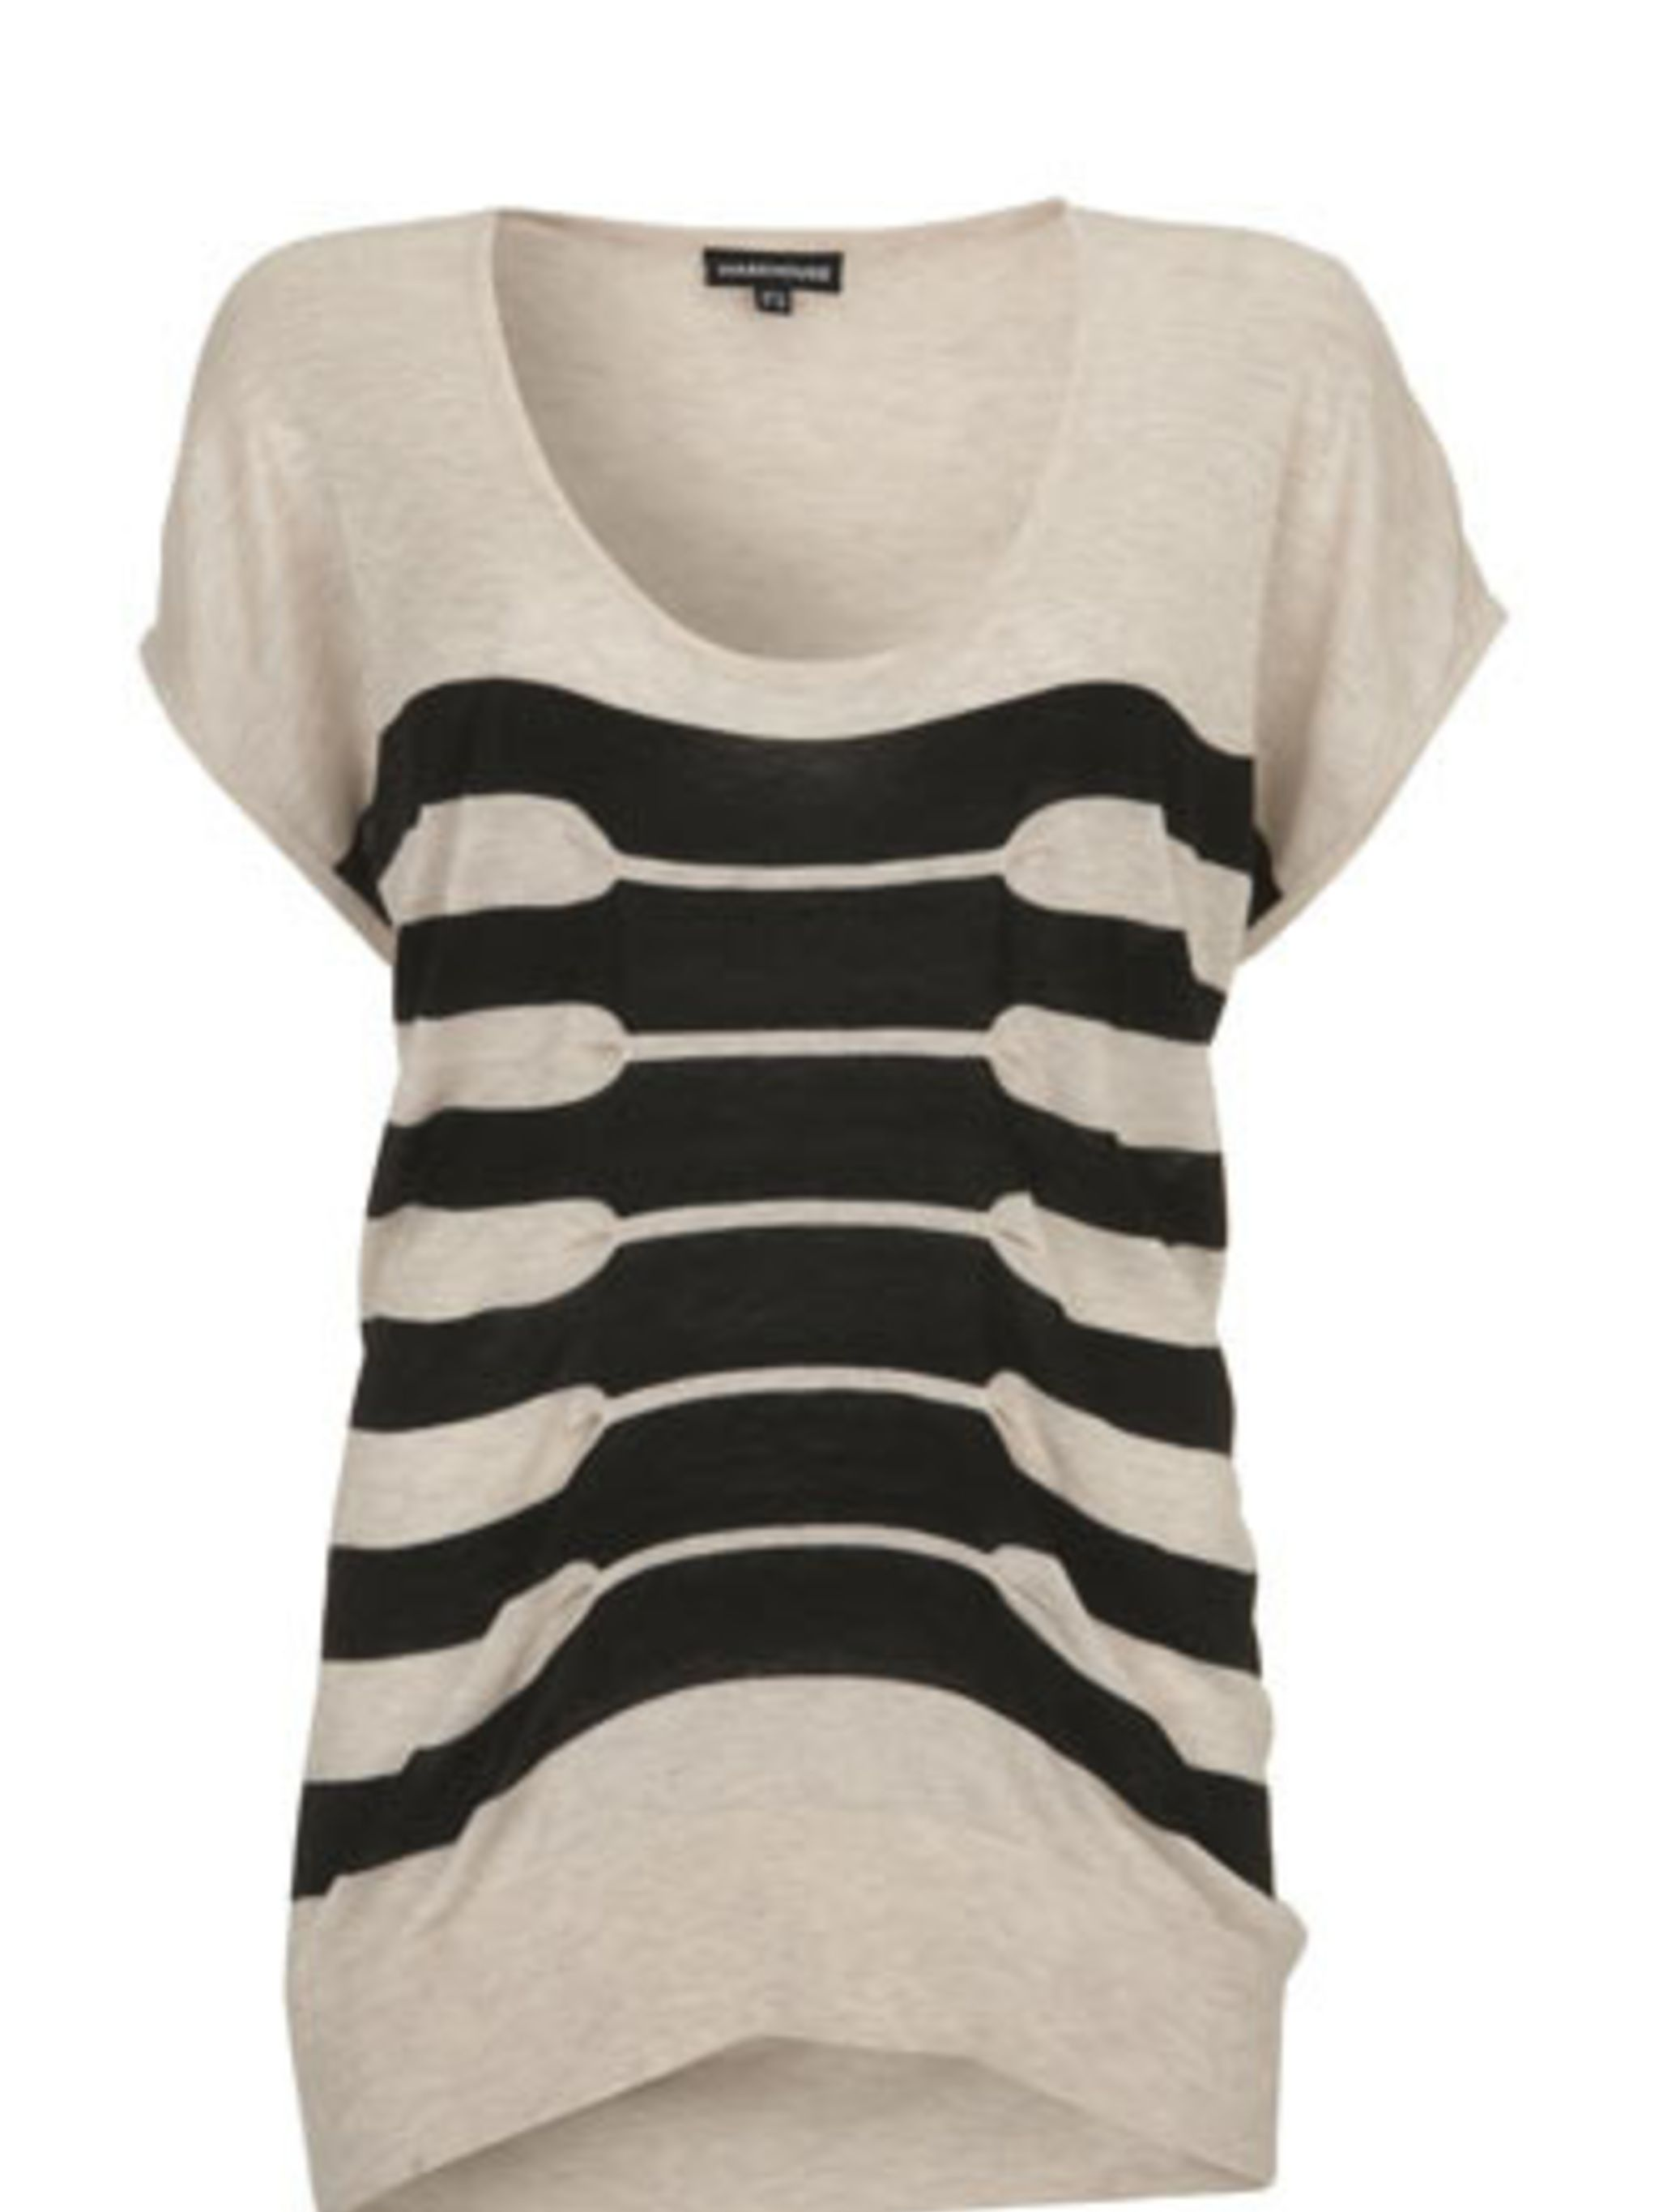 """<p>This uber-cool gathered knit will look great with skinny black jeans and the Reiss wedges. Pair it with a boyfriend blazer and you're good to go.</p><p>Top, £38 by <a href=""""http://www.warehouse.co.uk/fcp/product/fashion//STRIPE-TUCK-TOP/299226"""">Warehou"""